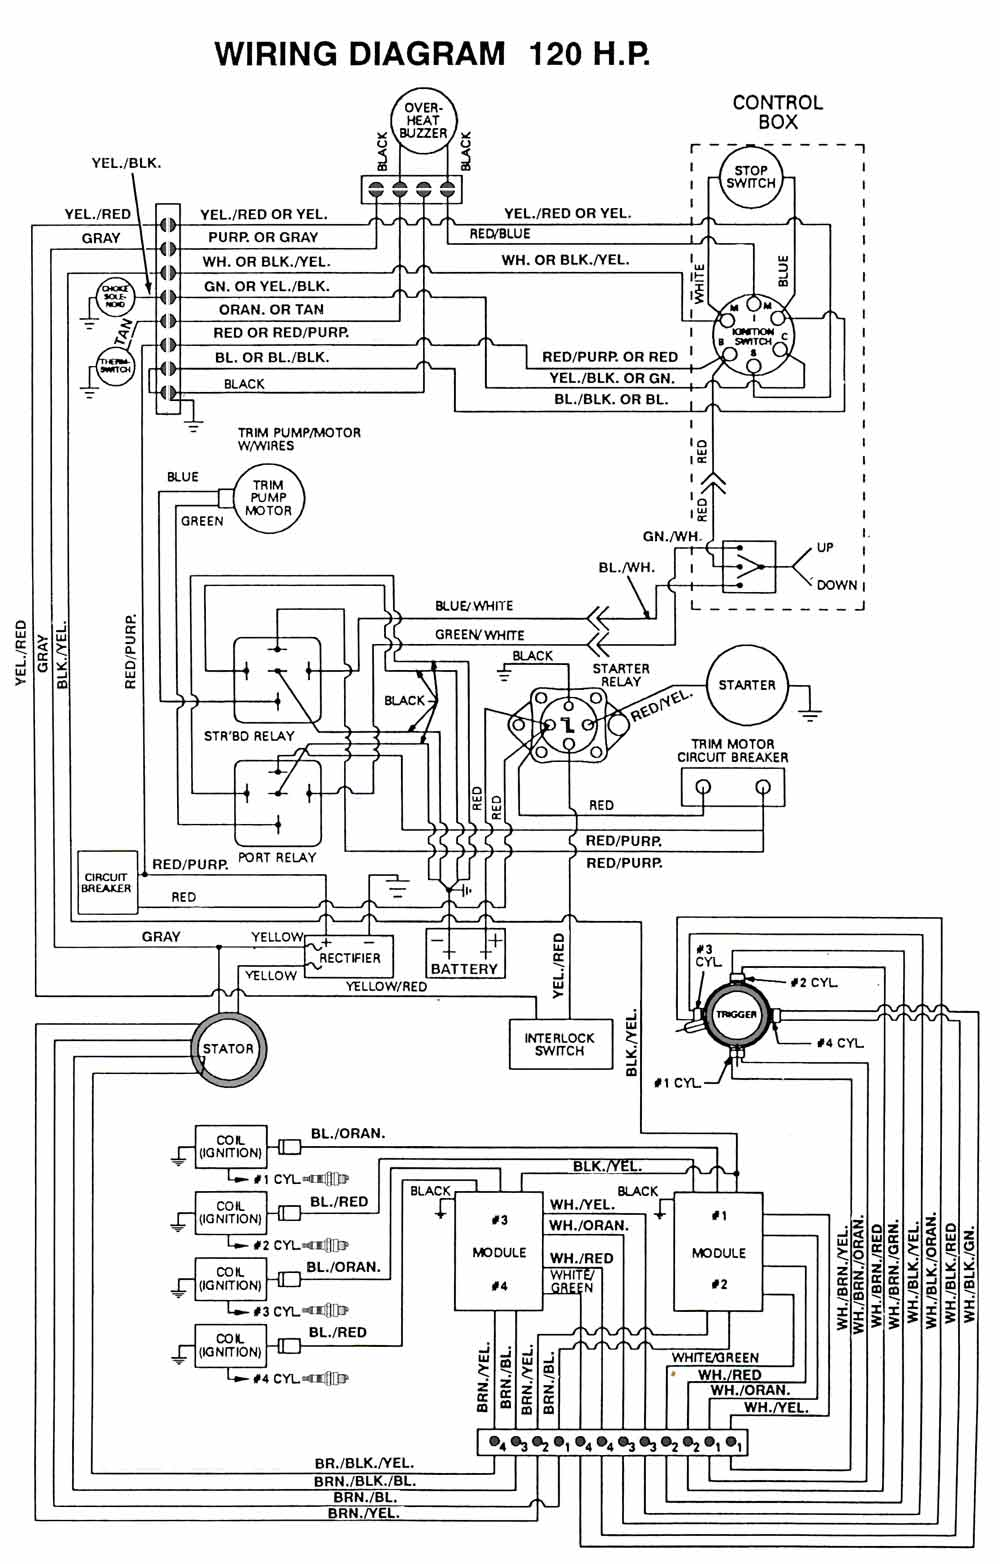 1989 Mercury 80 Hp Outboard Wiring Diagram Libraries 115 Schematic Force Hubmercury 45 Jet Library